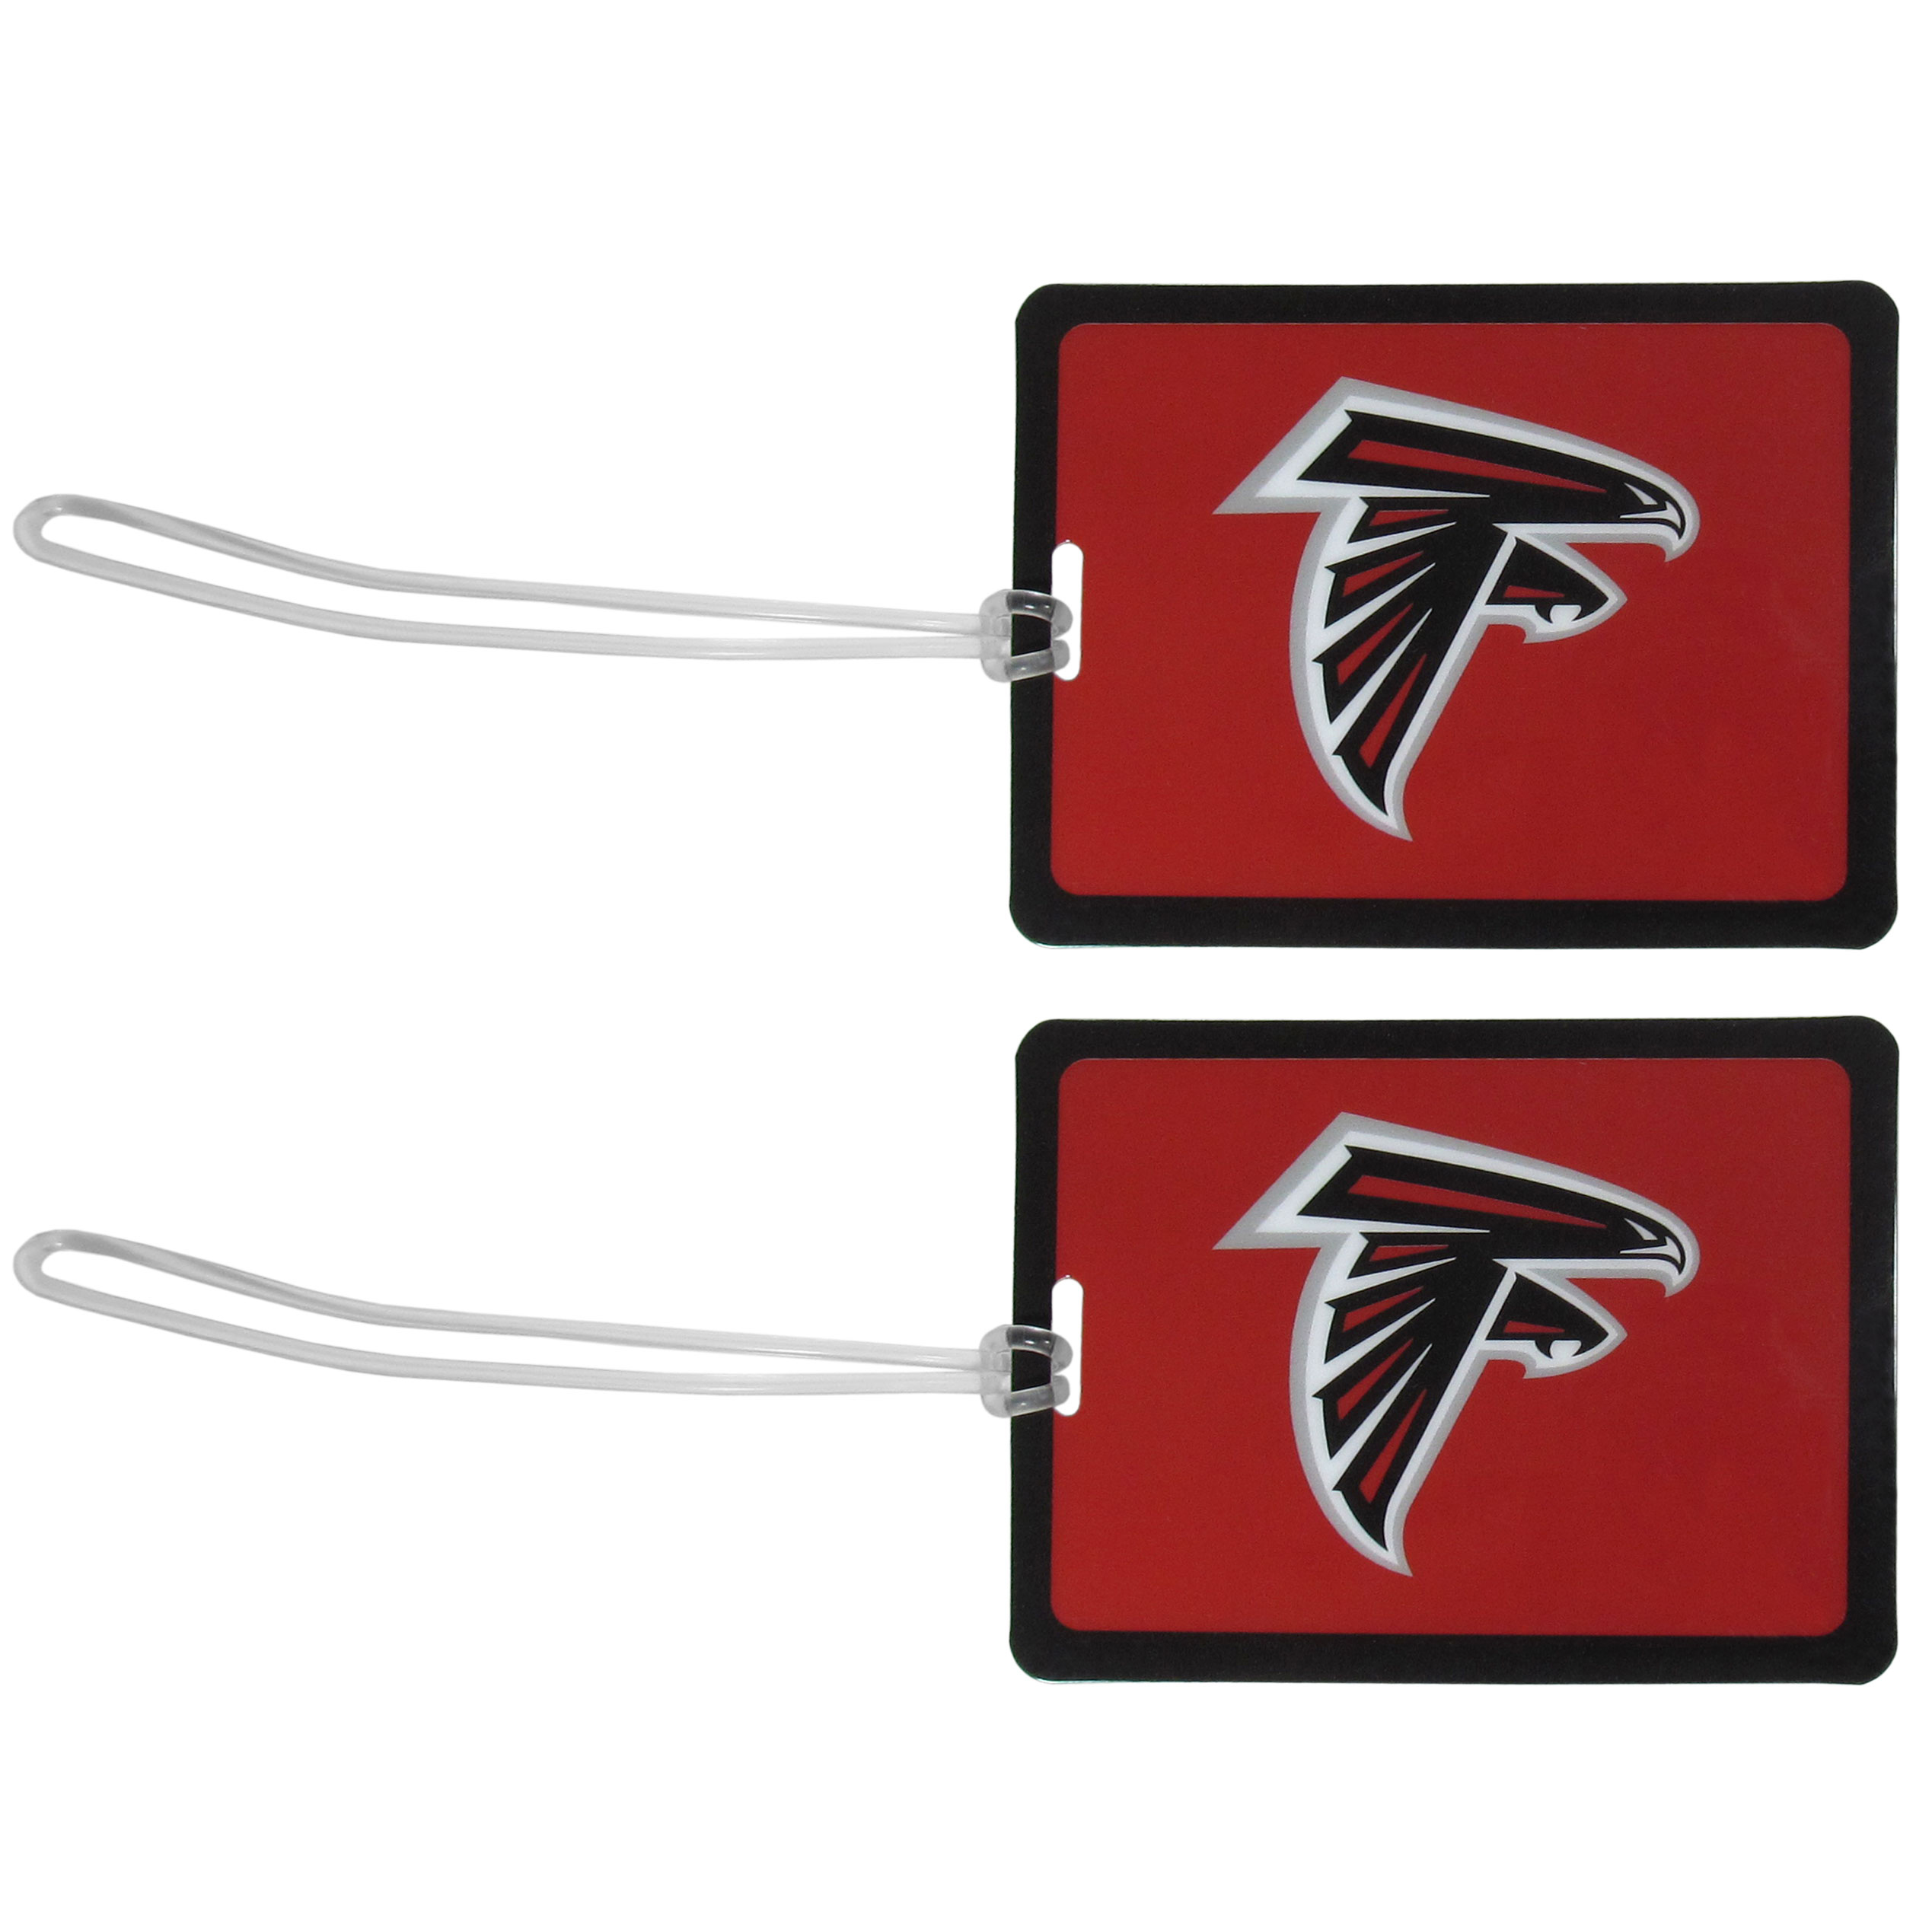 Atlanta Falcons Vinyl Luggage Tag, 2pk - Tired of trying to spot your suitcase or bag in a sea of luggage? Try our large and colorful Atlanta Falcons luggage tags. The tag is 4x3 inches and has a 5 inch cord to attach it easily to your bags, backpacks or luggage. The front of the tag features the team logo in a bright, team colored background and you can write you name, address and phone number on the back of the tag.